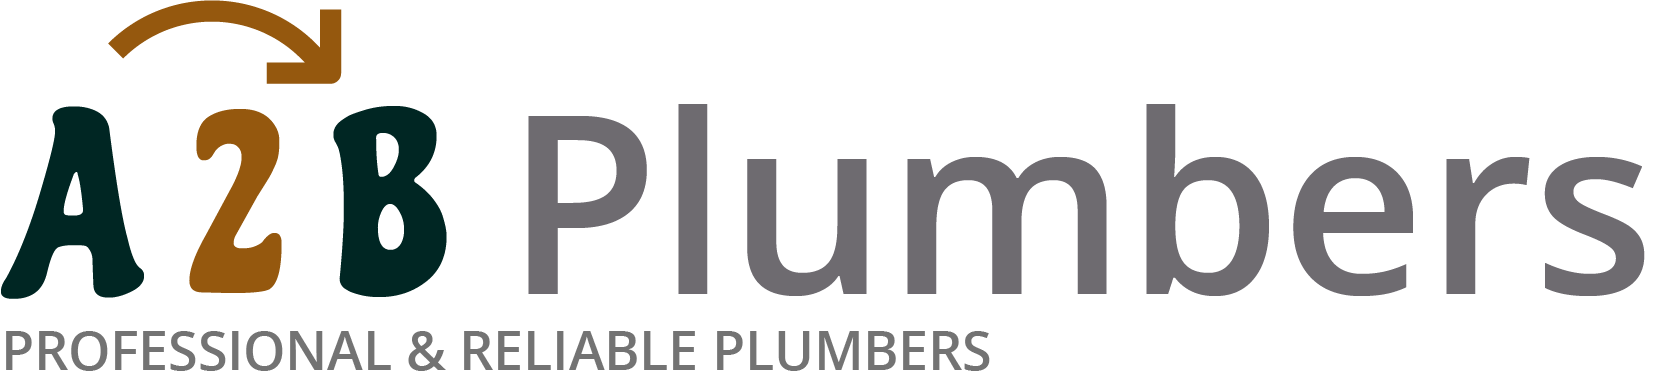 If you need a boiler installed, a radiator repaired or a leaking tap fixed, call us now - we provide services for properties in Hainault and the local area.